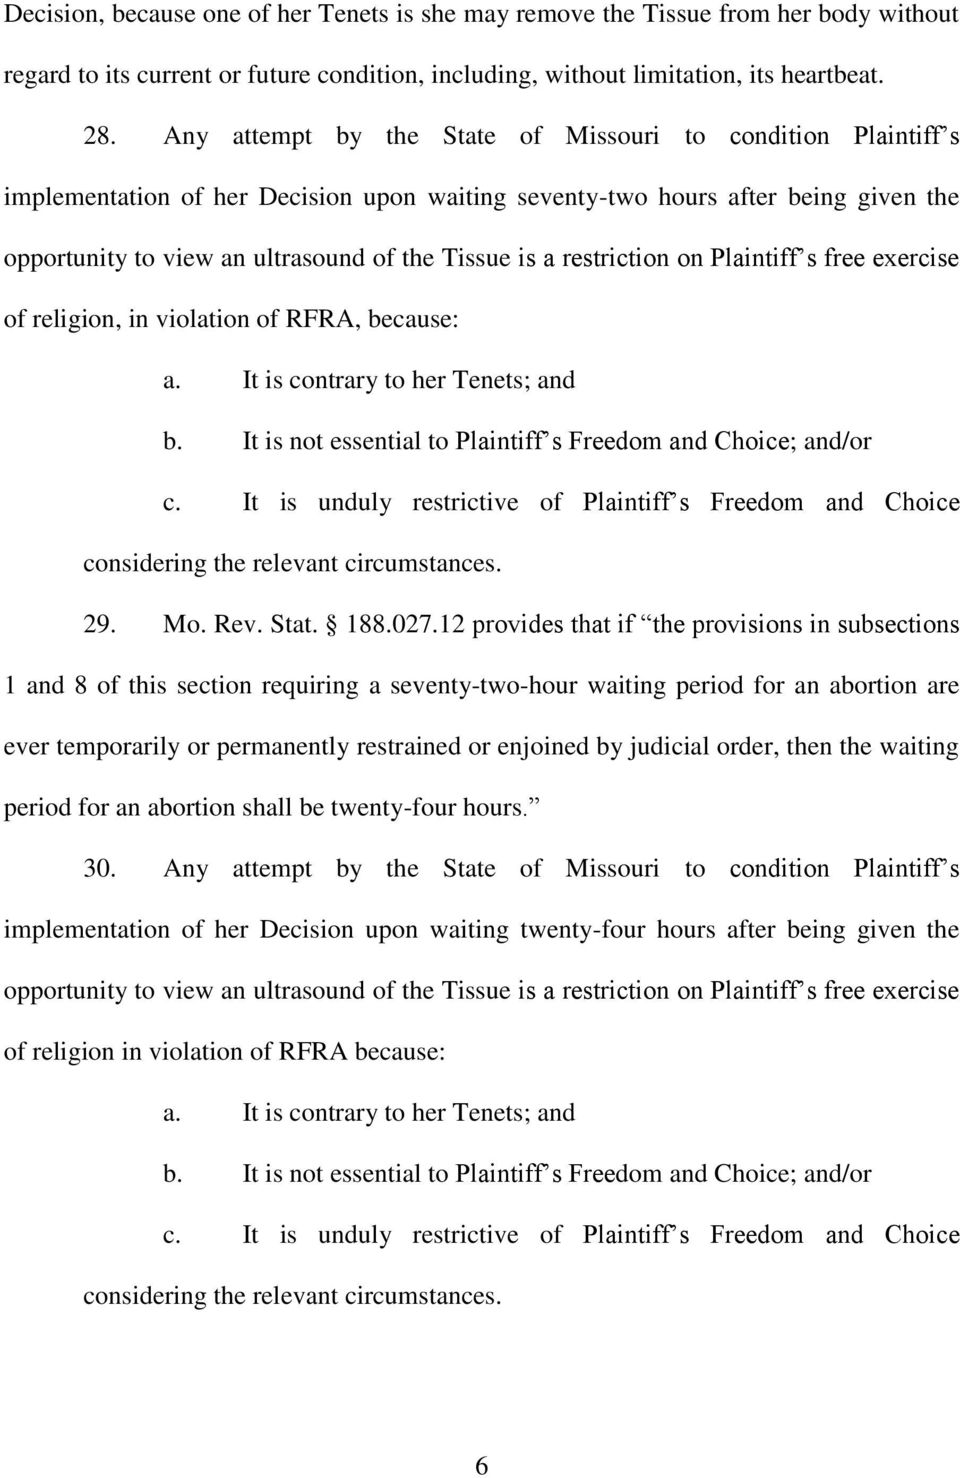 restriction on Plaintiff s free exercise of religion, in violation of RFRA, because: a. It is contrary to her Tenets; and b. It is not essential to Plaintiff s Freedom and Choice; and/or c.